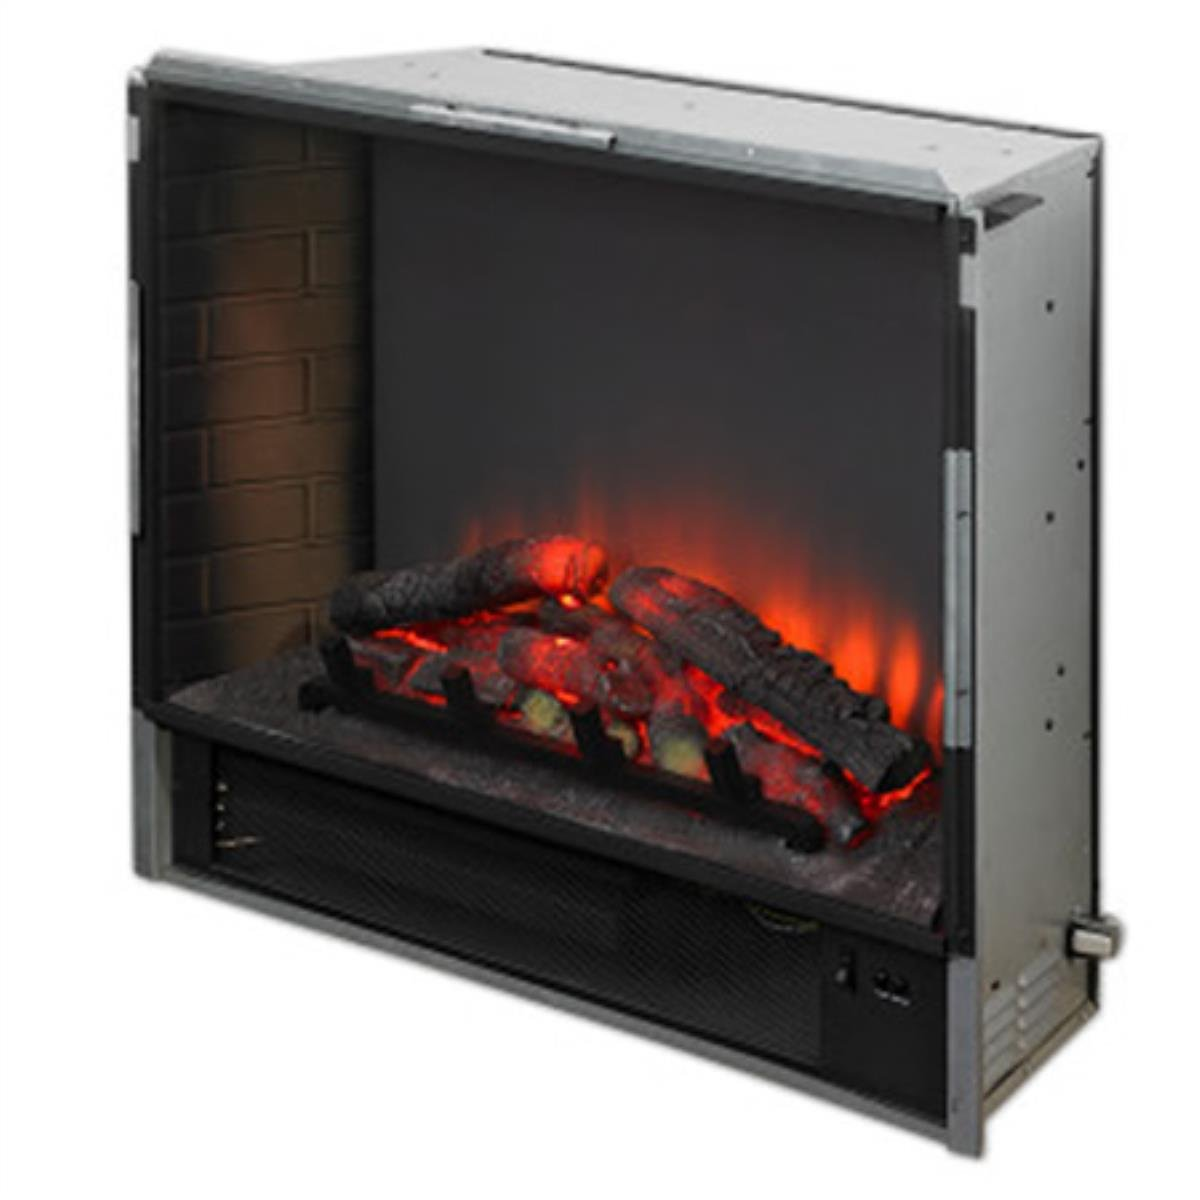 Amazon.com: Gallery Led Built in Electric Fireplace: Home & Kitchen